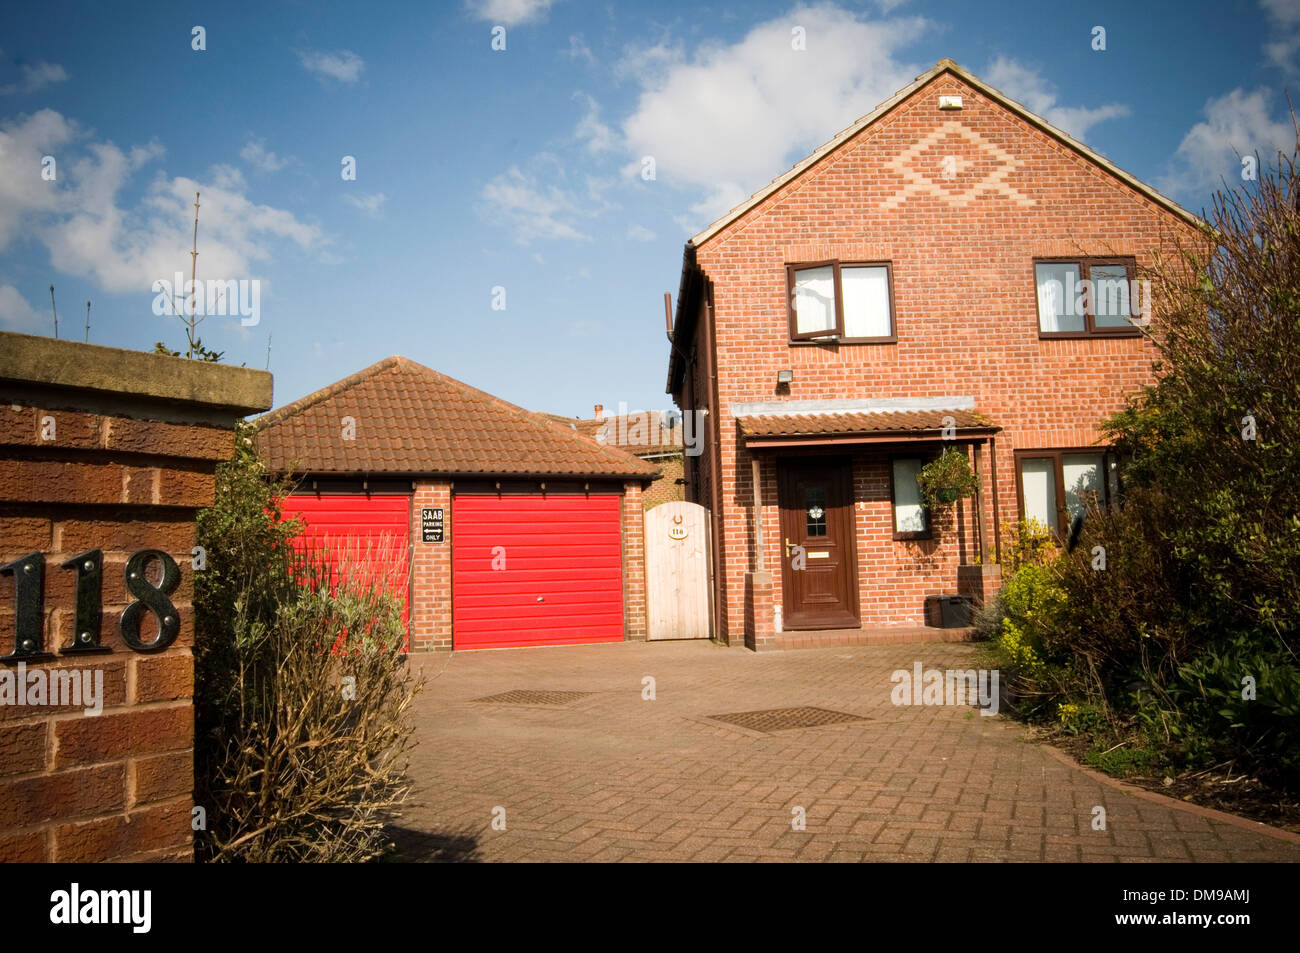 Detached House Houses Home Uk Four Bedroom Suburban